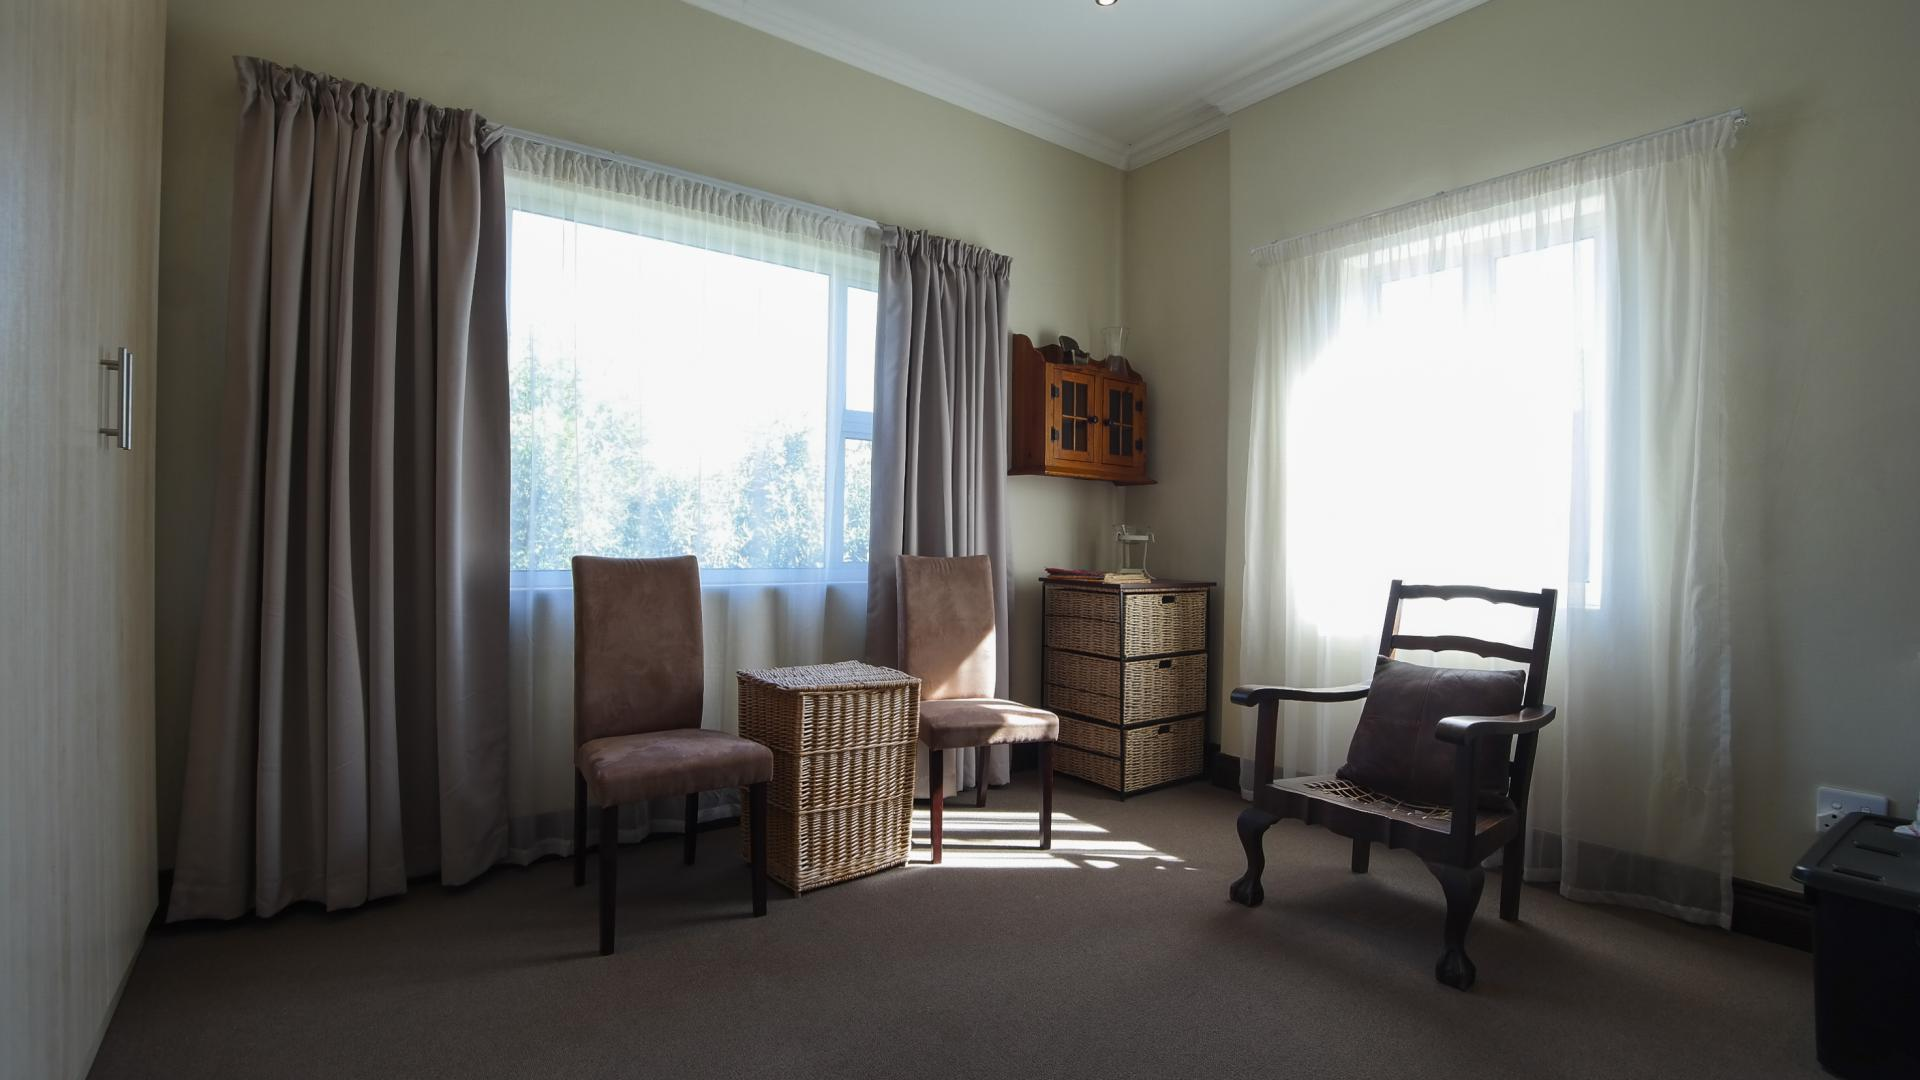 Rent A Room For A Day In Pretoria